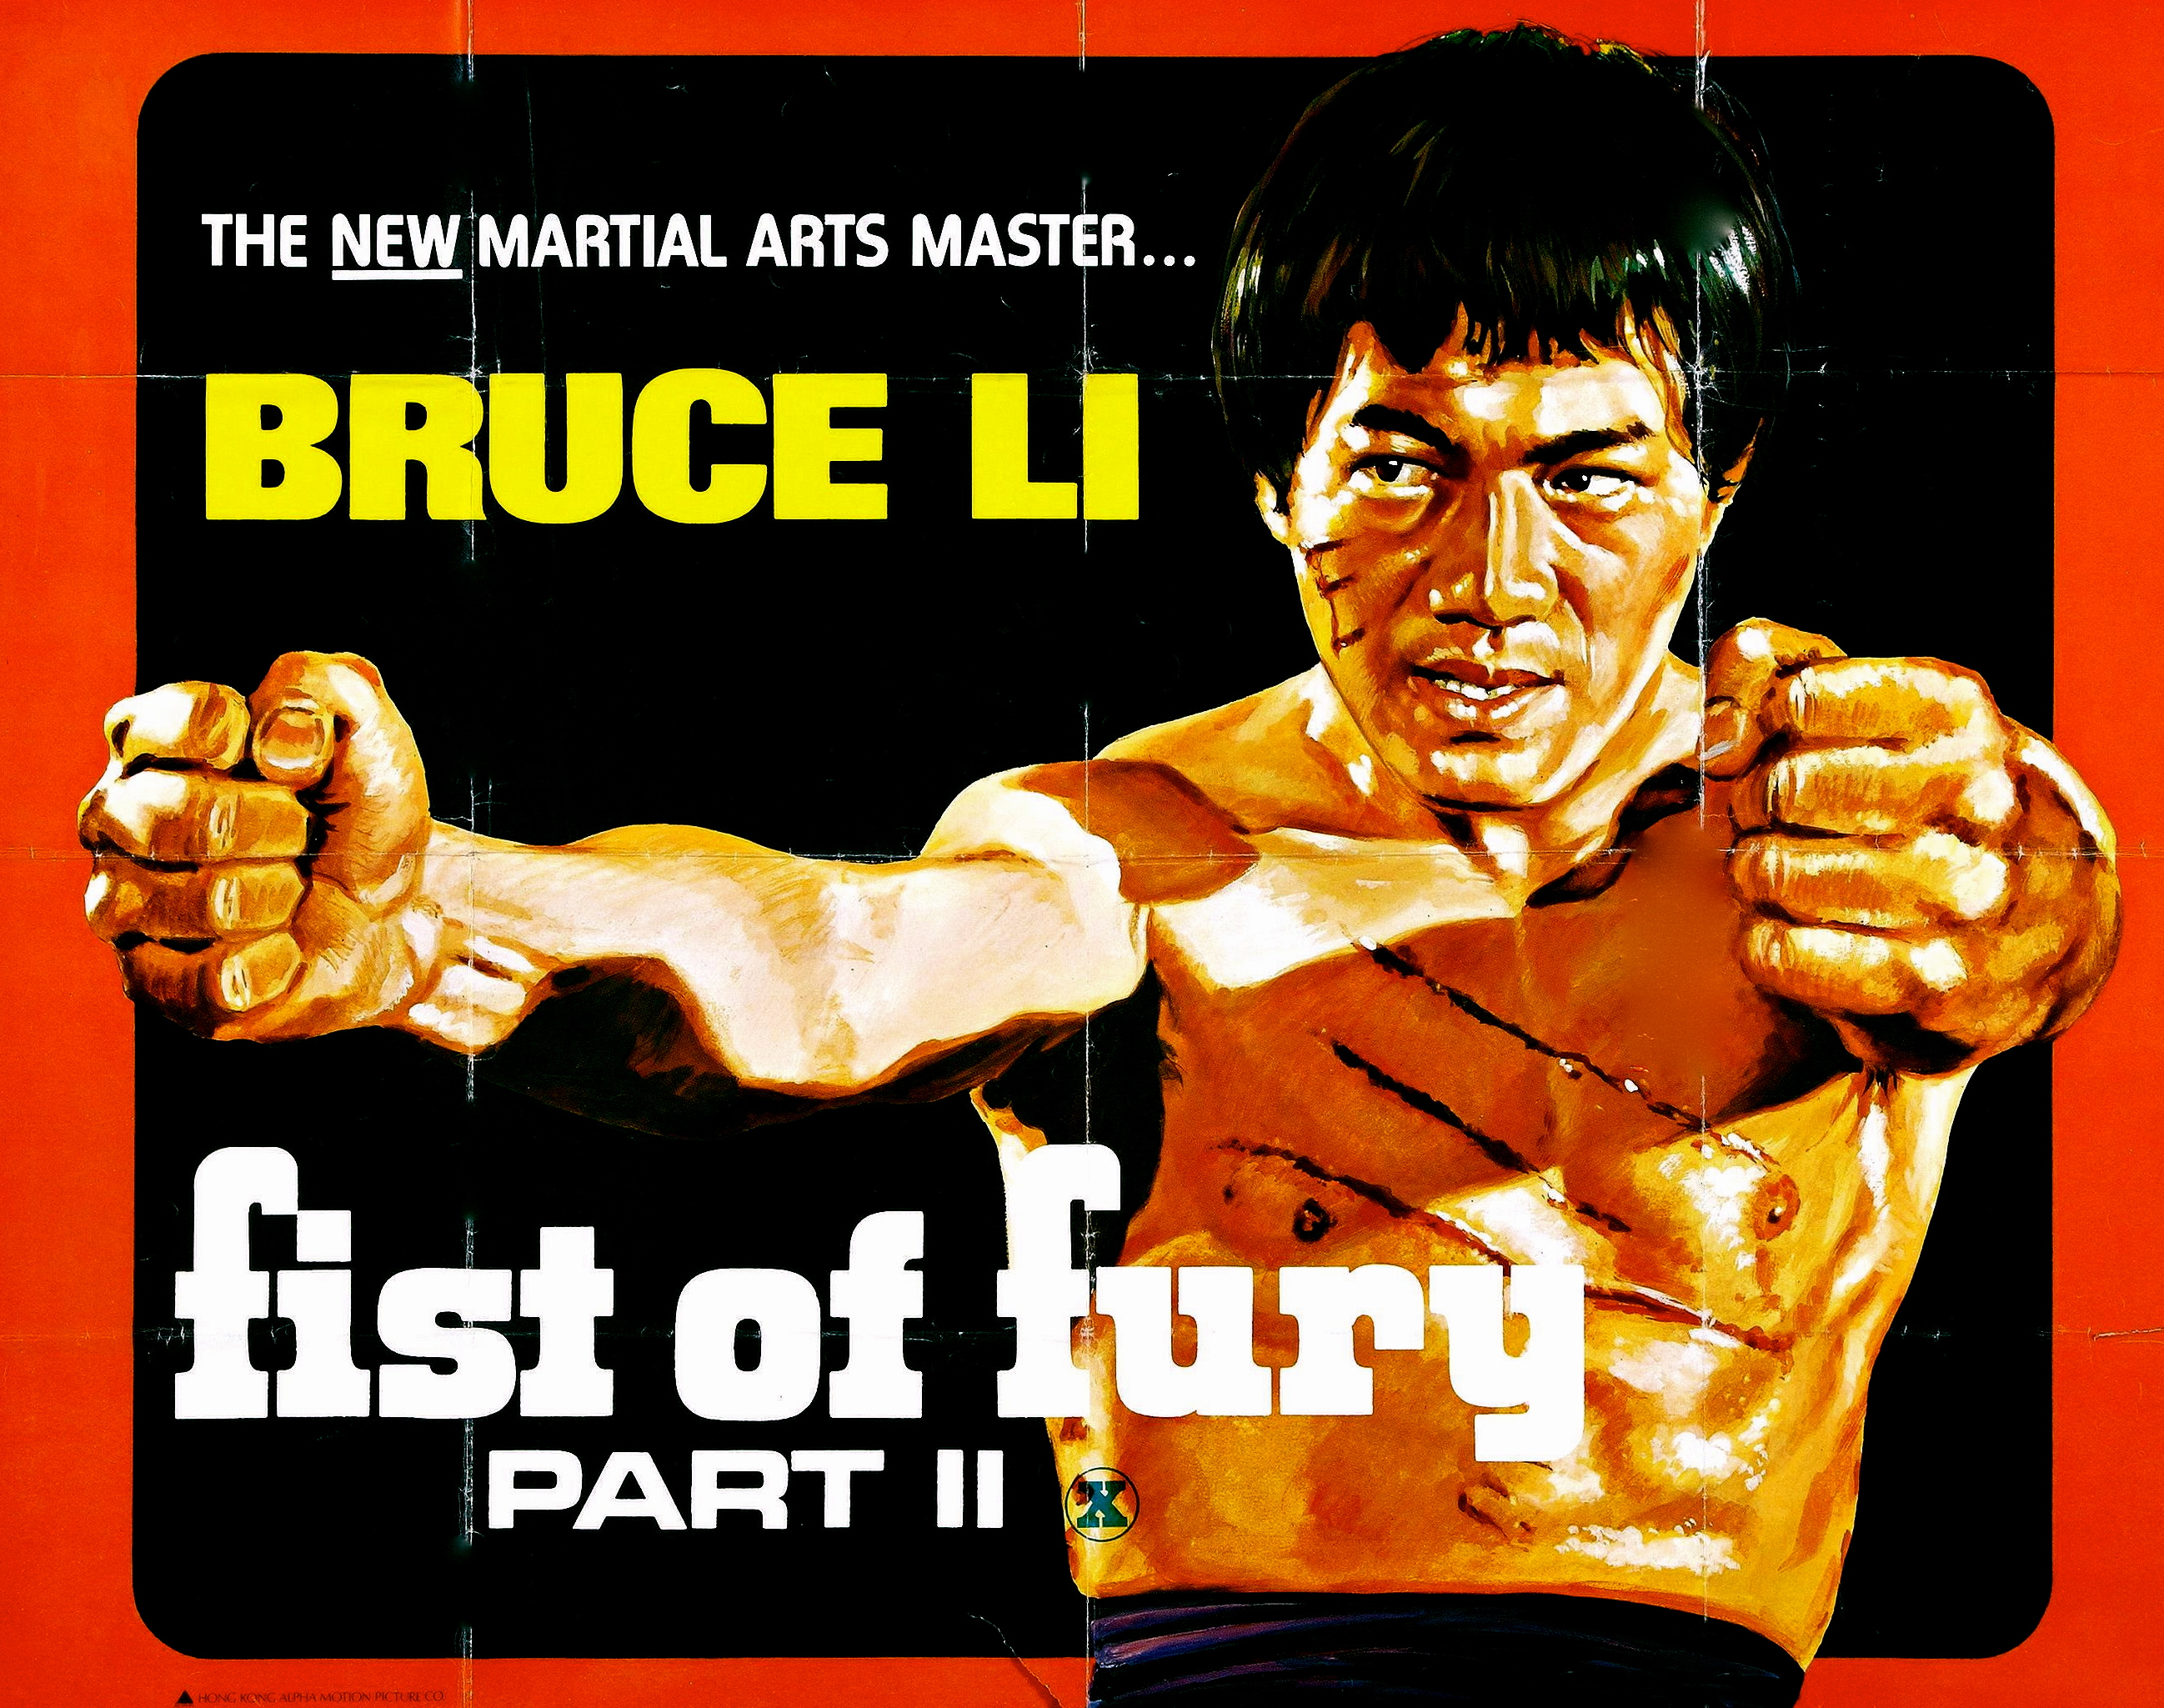 fist_of_fury_part_2_poster_01 .